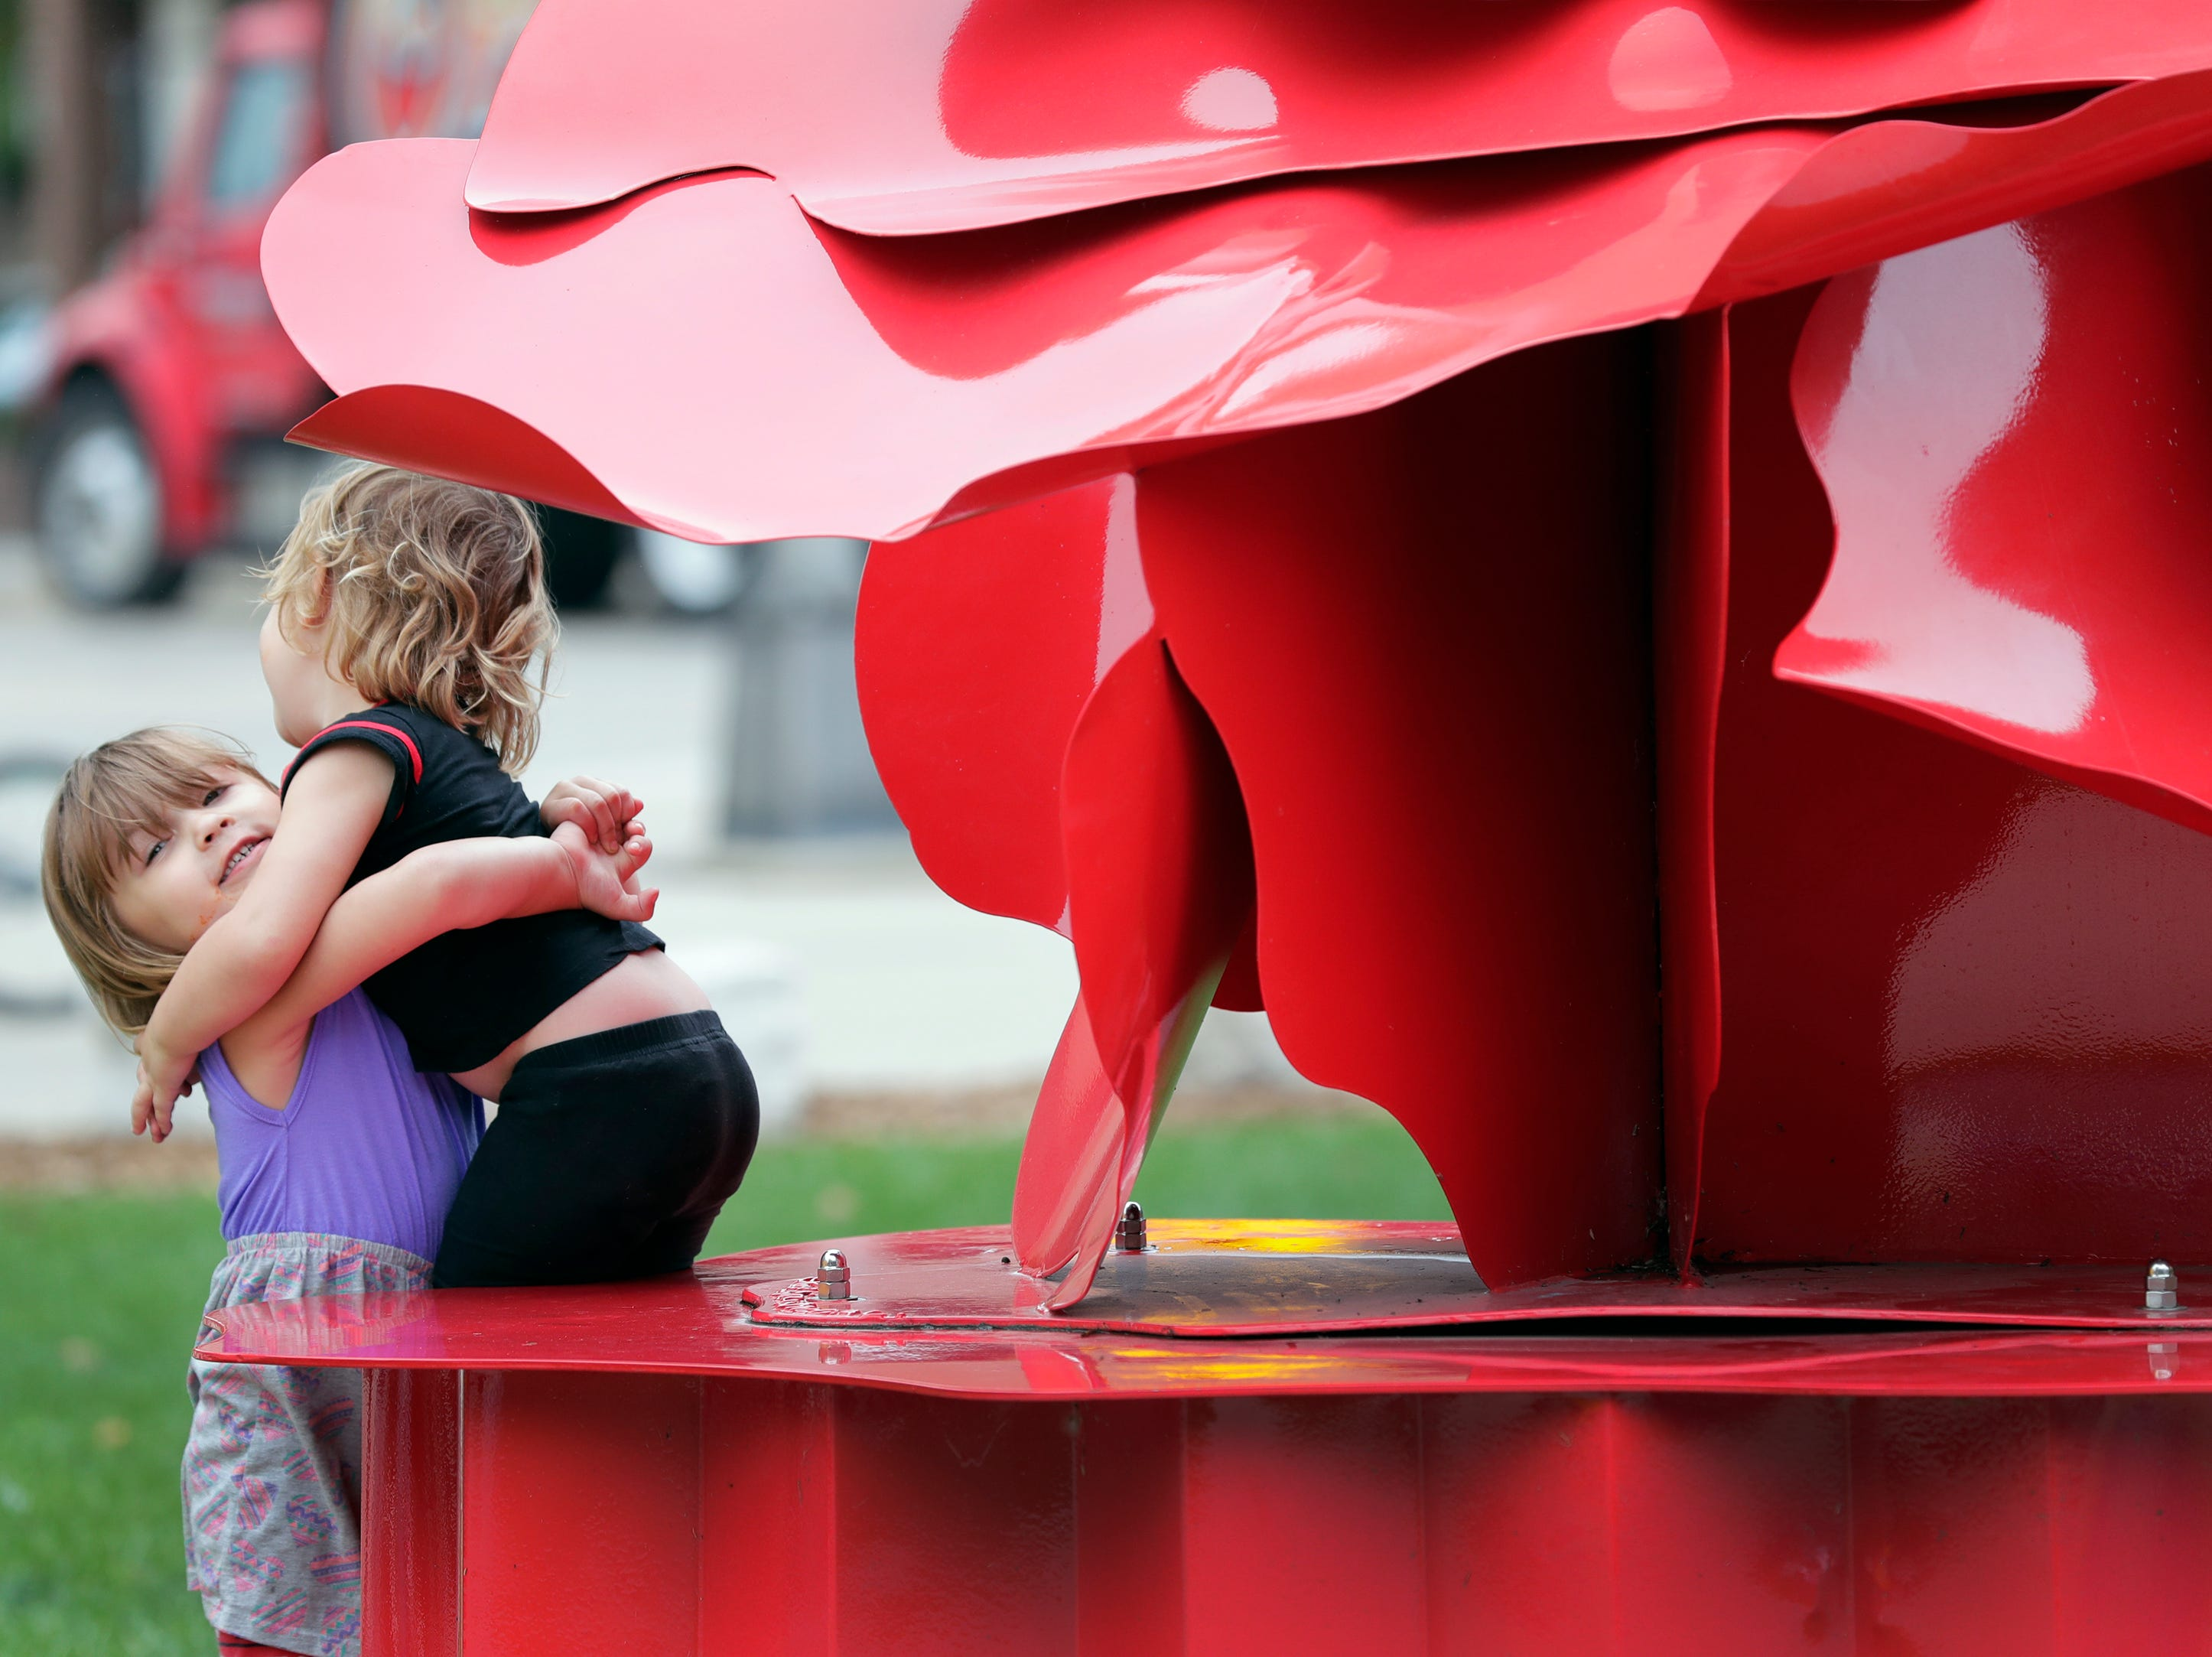 Callie Hooyman, 3, left, helps her twin sister Rylee Hooyman as they play on a sculpture in Houdini Plaza during the Mile of Music Thursday, August 2, 2018, in Appleton, Wis.  Dan Powers/USA TODAY NETWORK-Wisconsin